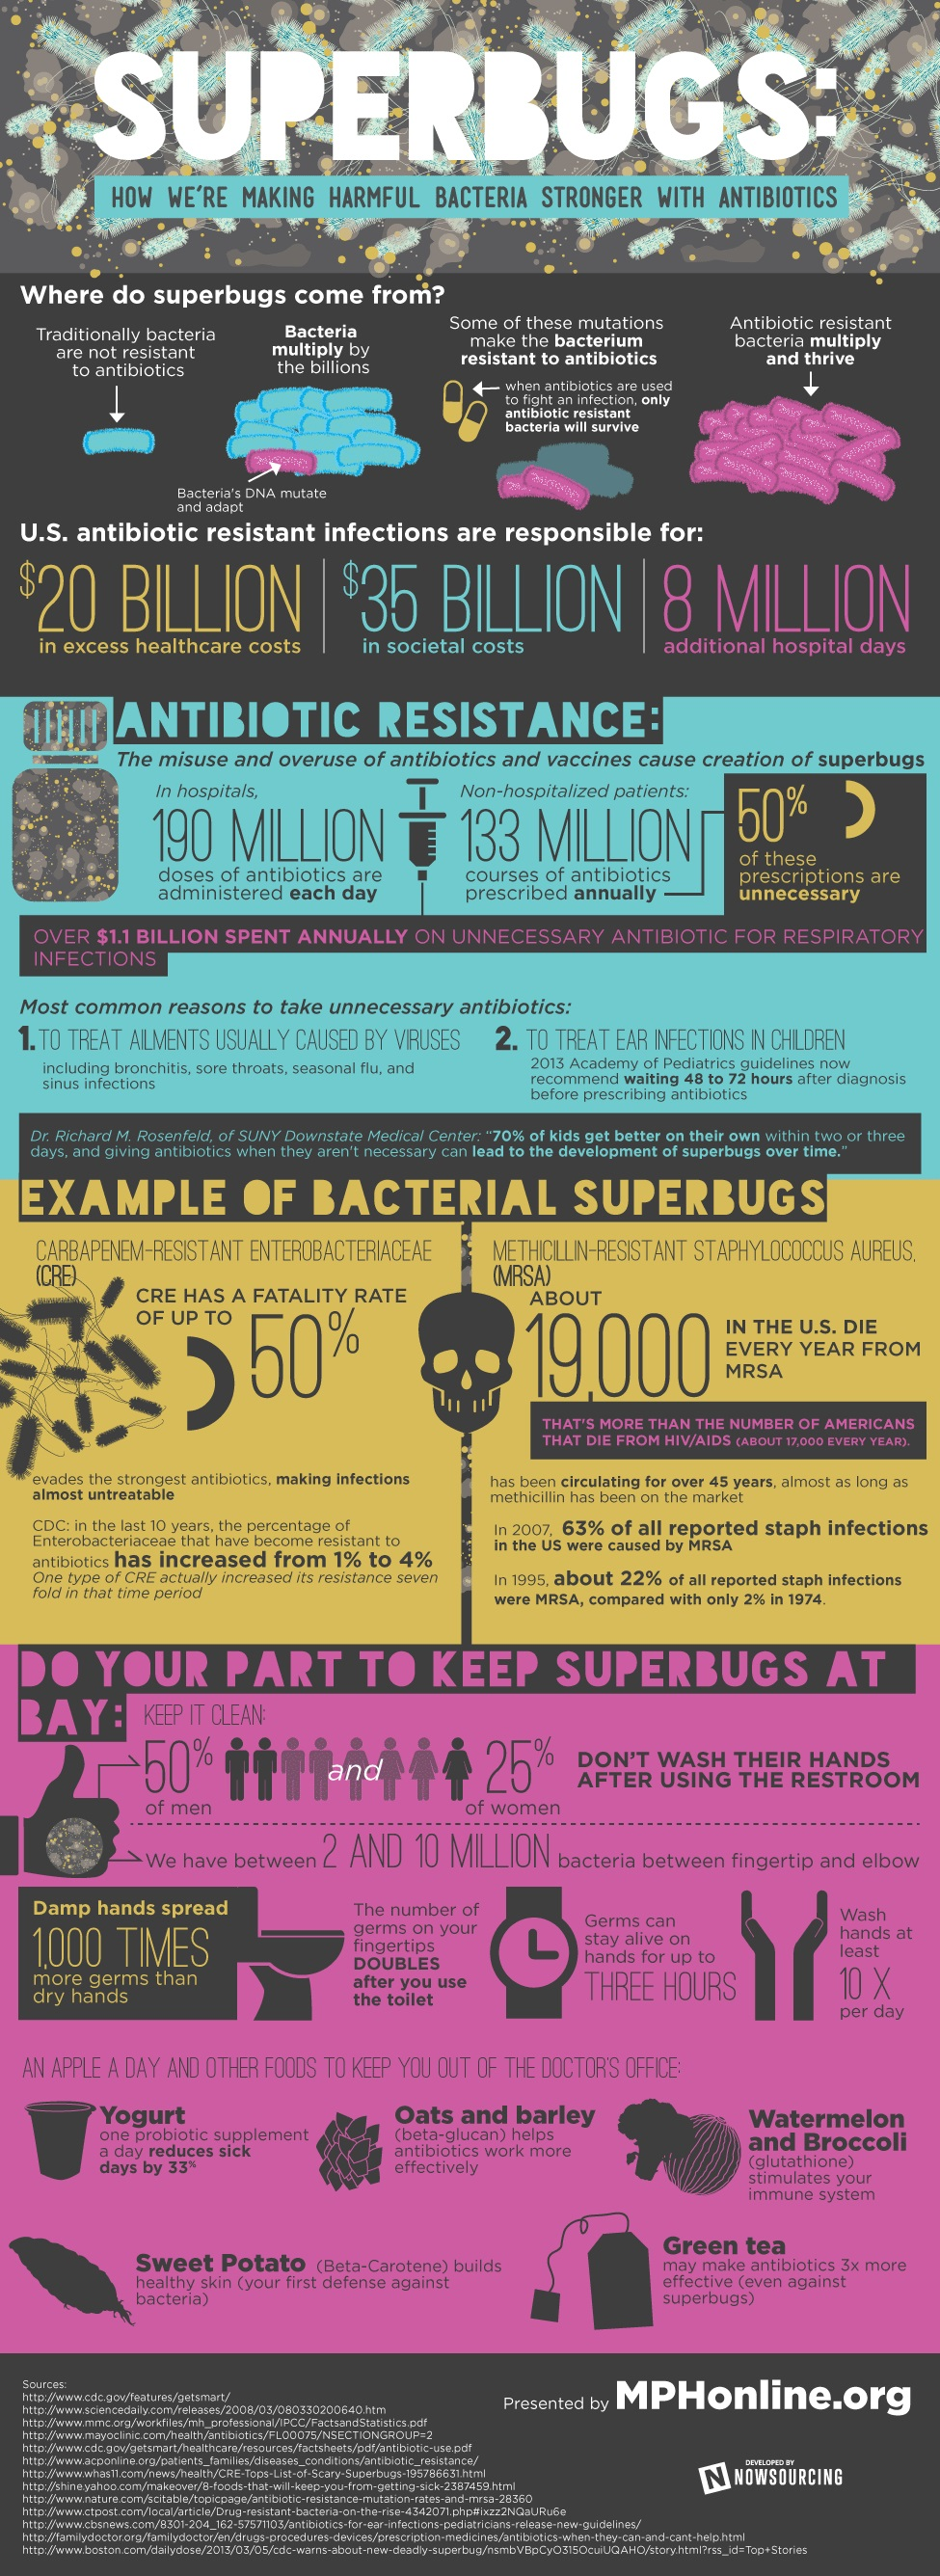 Superbugs: How We're Making Bacteria Stronger With Antibiotics